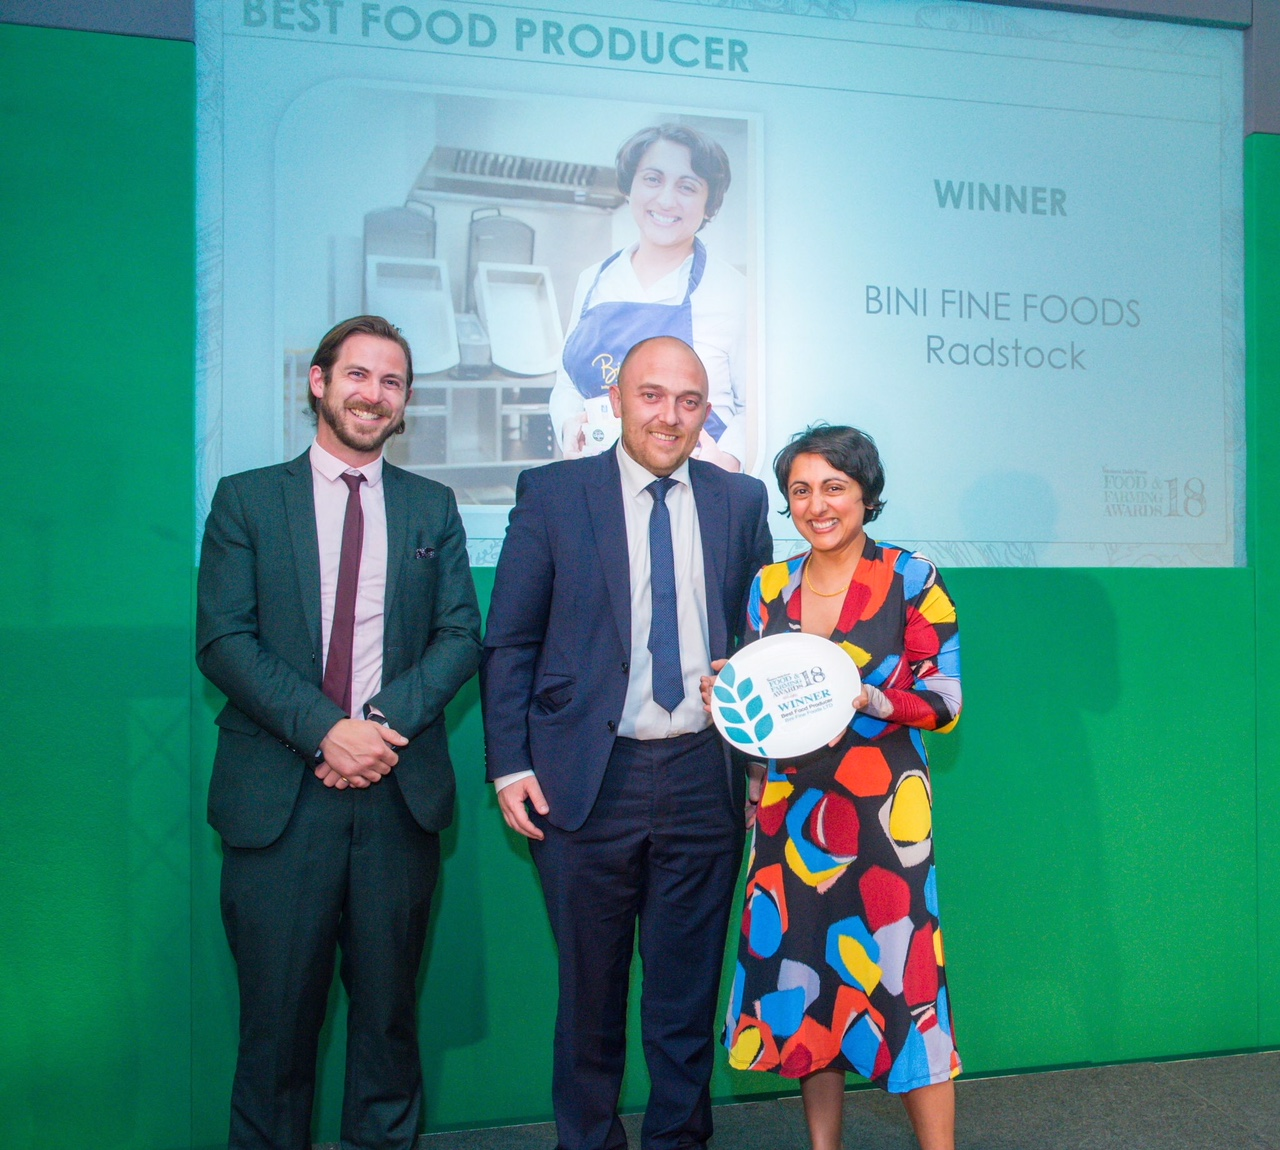 Bini Fine Foods Ltd - Best Food Producer Awards 2018 - Western Daily Press